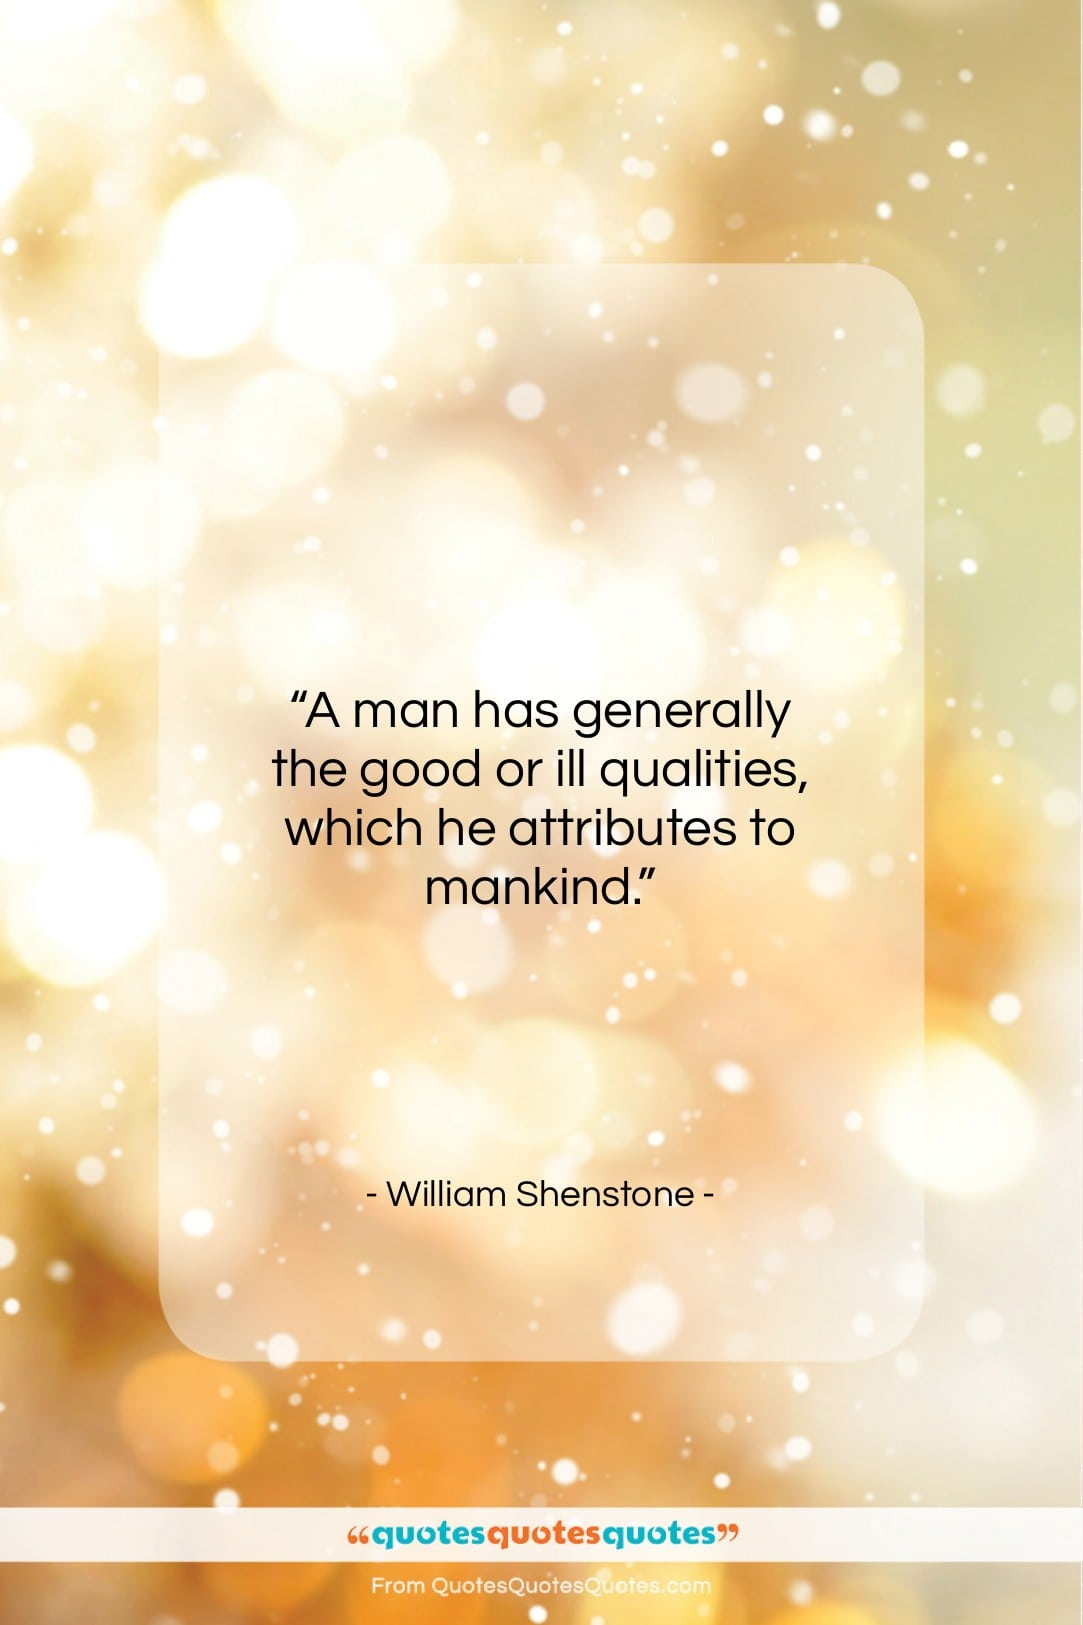 """William Shenstone quote: """"A man has generally the good or…""""- at QuotesQuotesQuotes.com"""